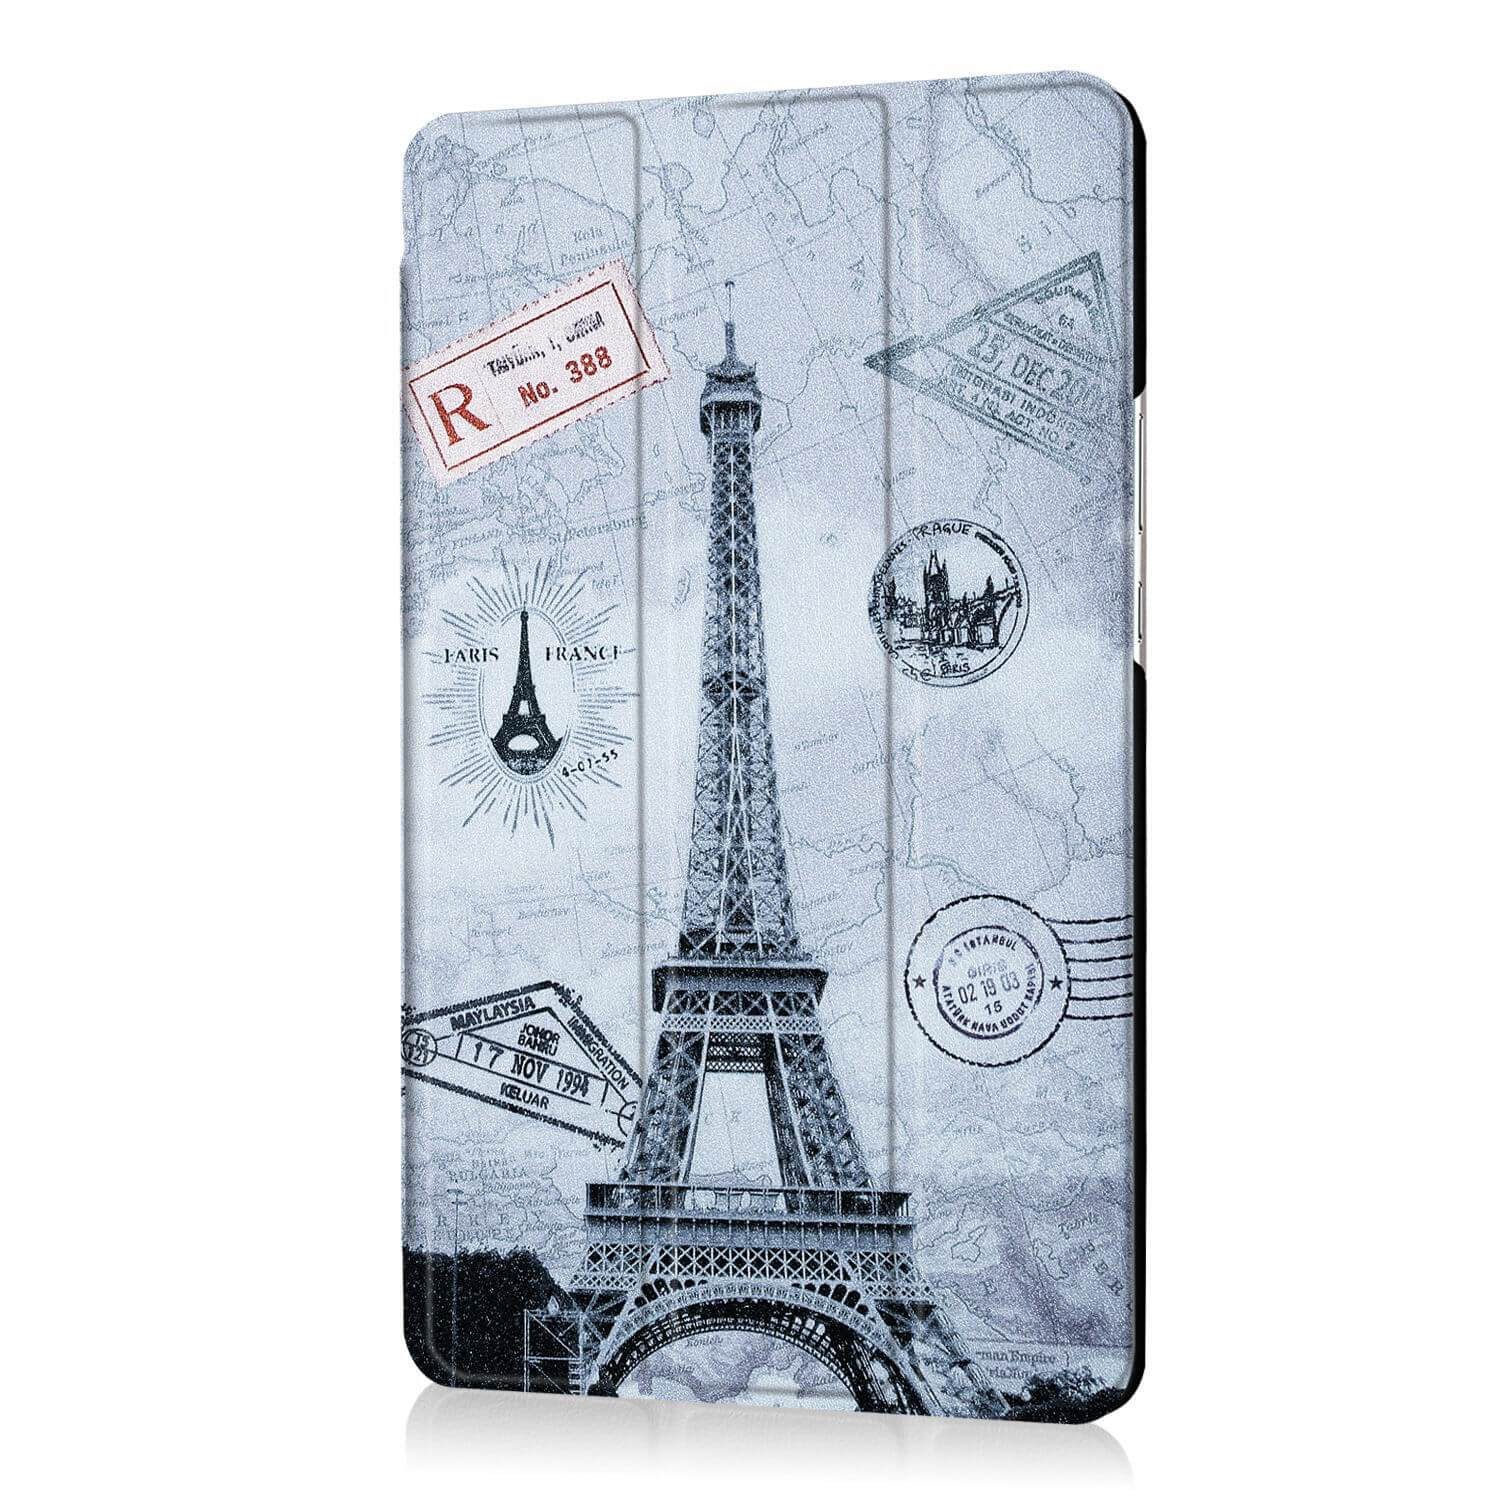 mediapad m3 bright painted case with pictures of paris butterflies and other Vintage Tower: